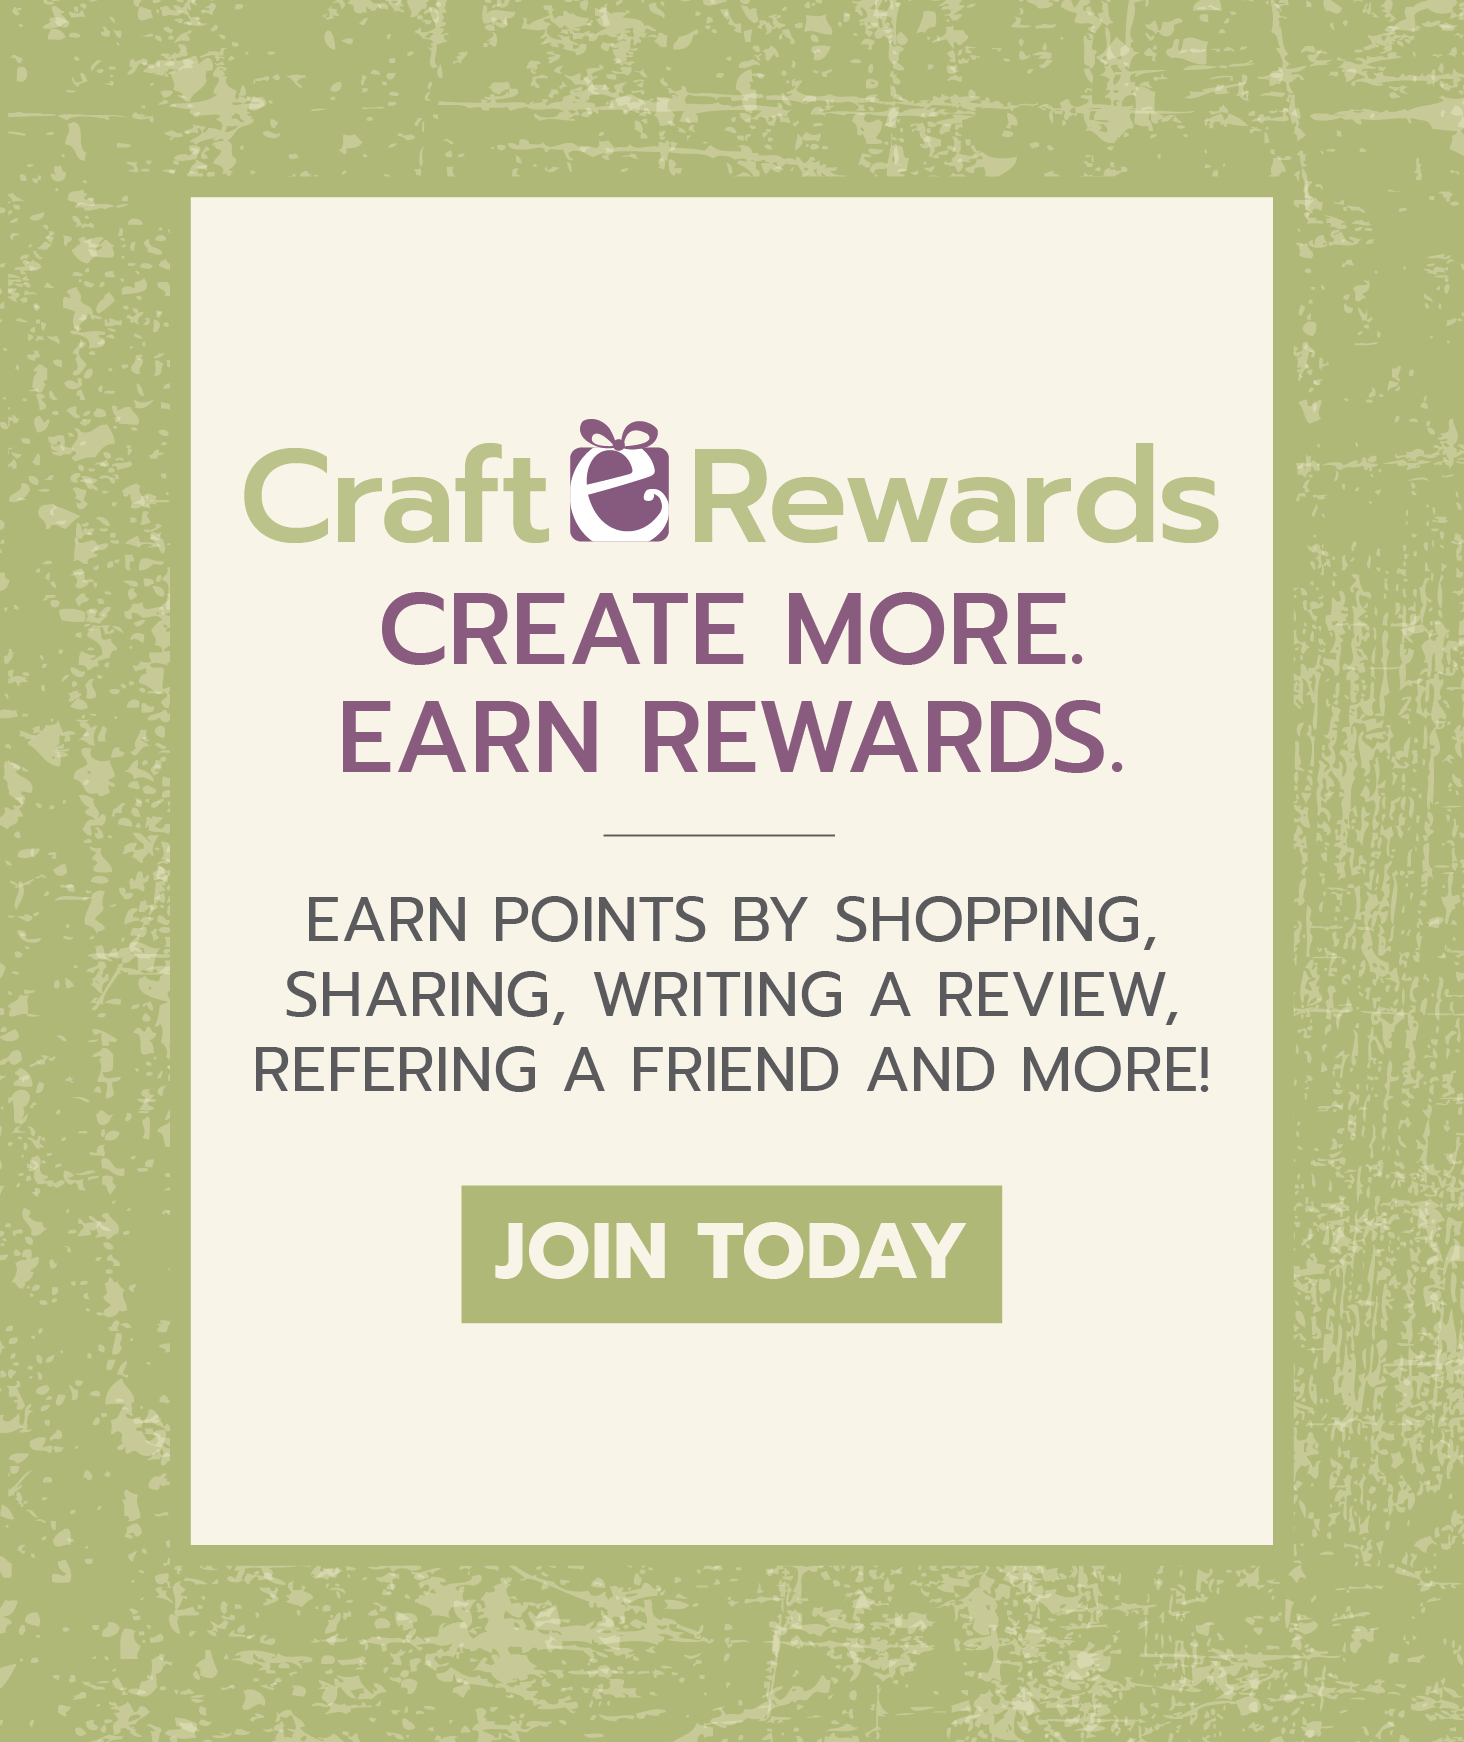 Craft-e-Rewards. Create more. Earn rewards. Earn points by shopping, sharing, writing a review, referring a friend and more! Join today.